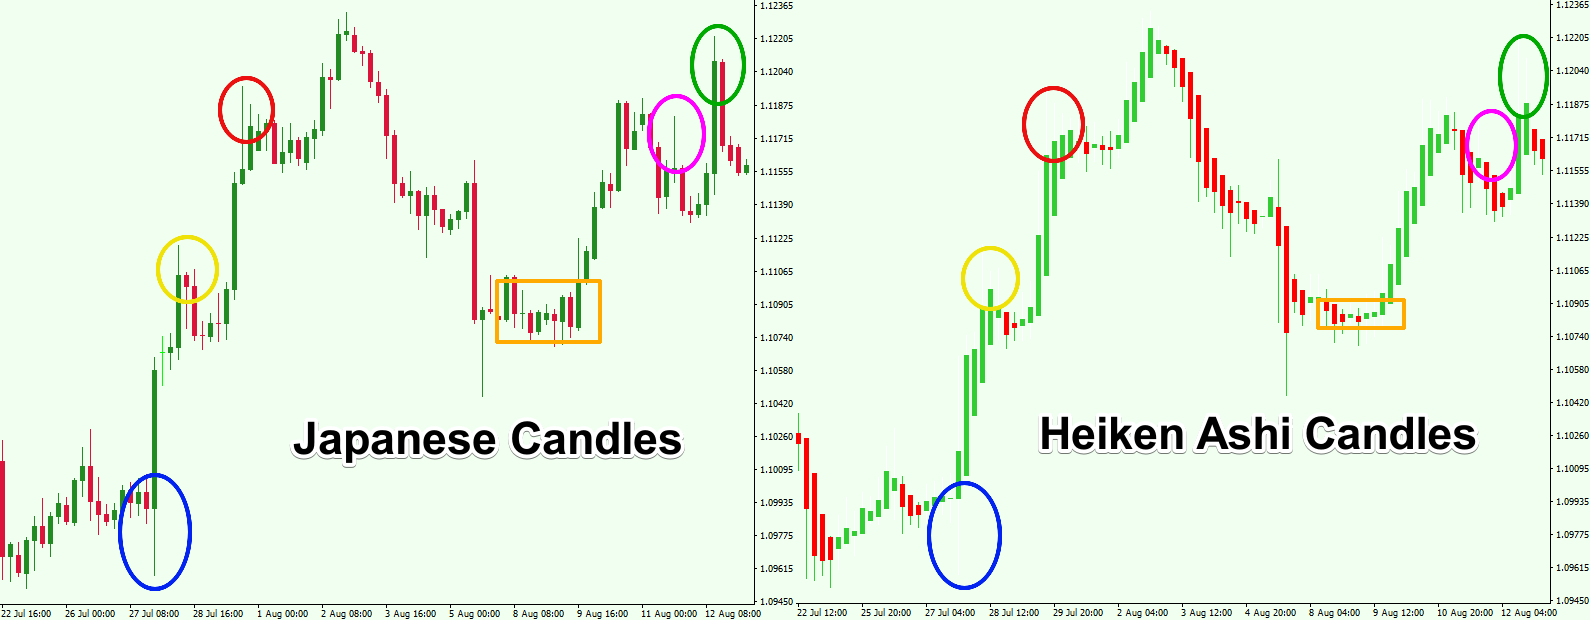 Japanese-Candlesticks-Vs.-Heiken-Ashi-Candles